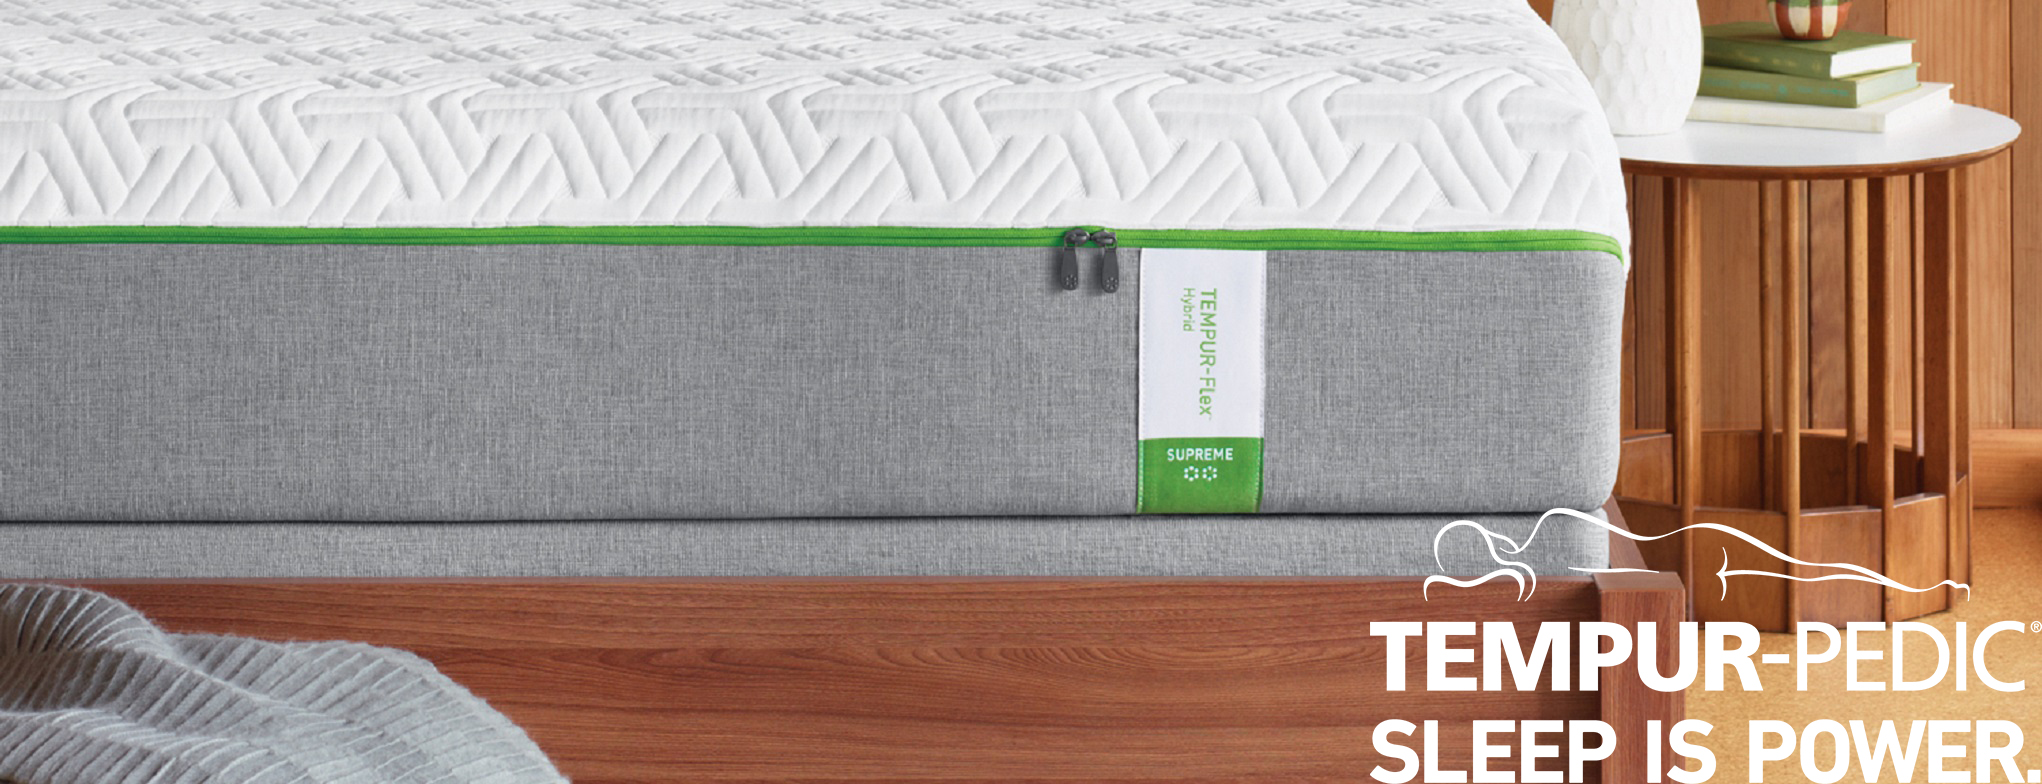 Tempur-Pedic Scroll Banner- Flex Supreme